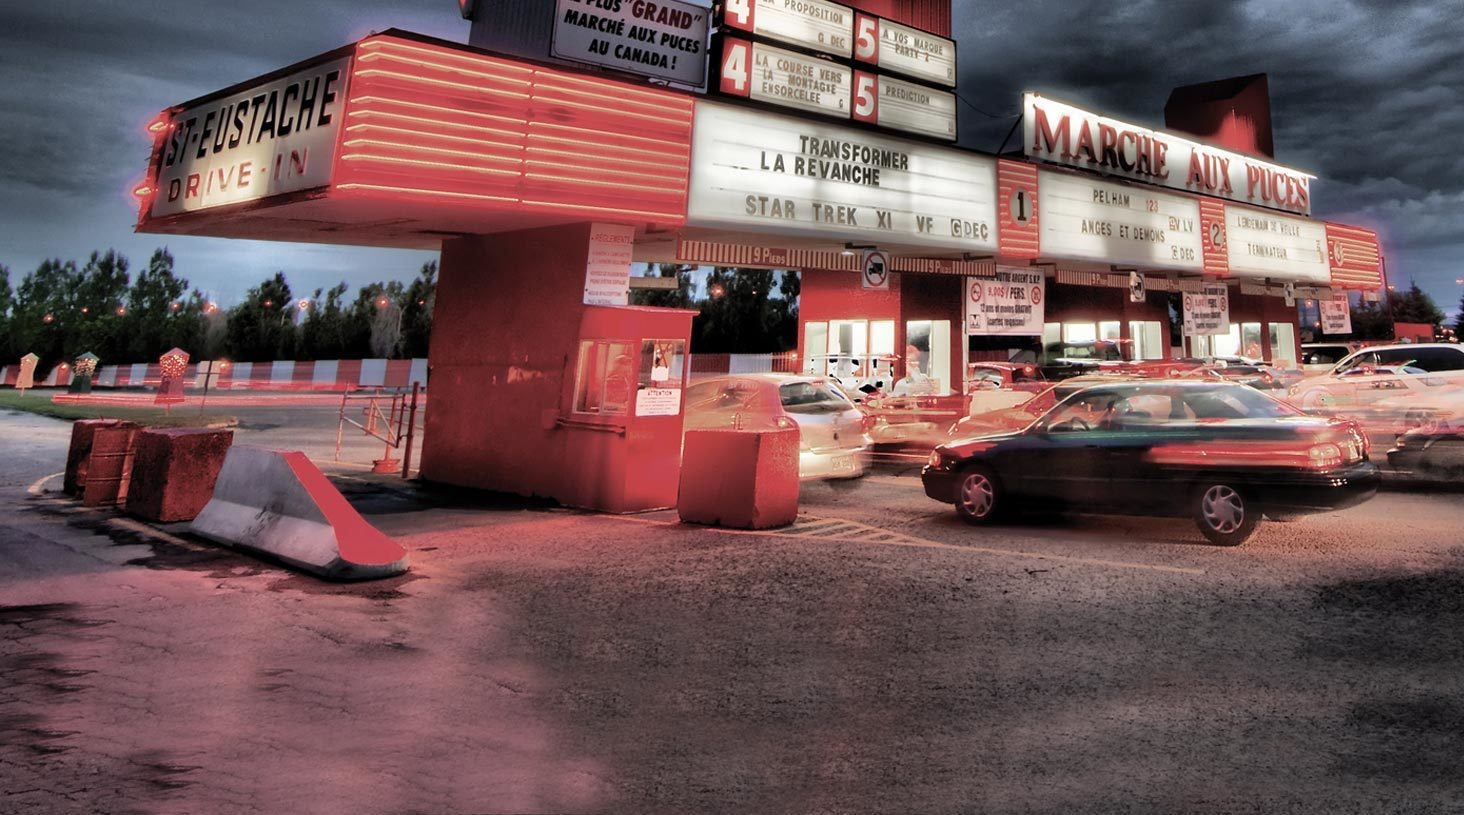 Drive-in Saint-Eustache